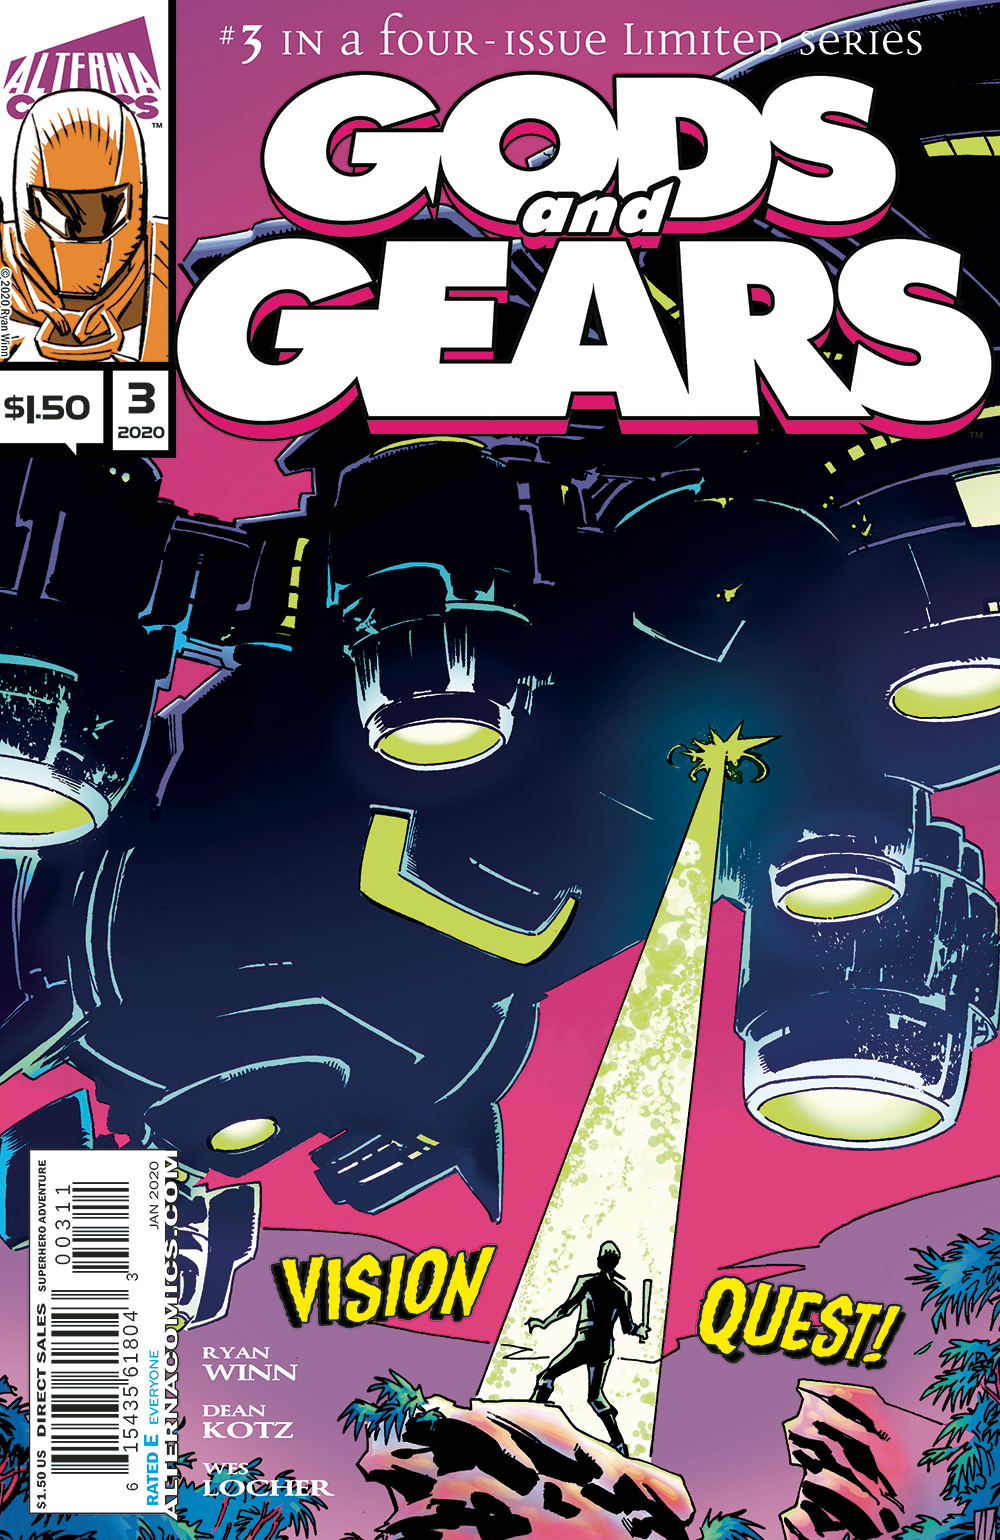 GODS AND GEARS #3 (OF 4)